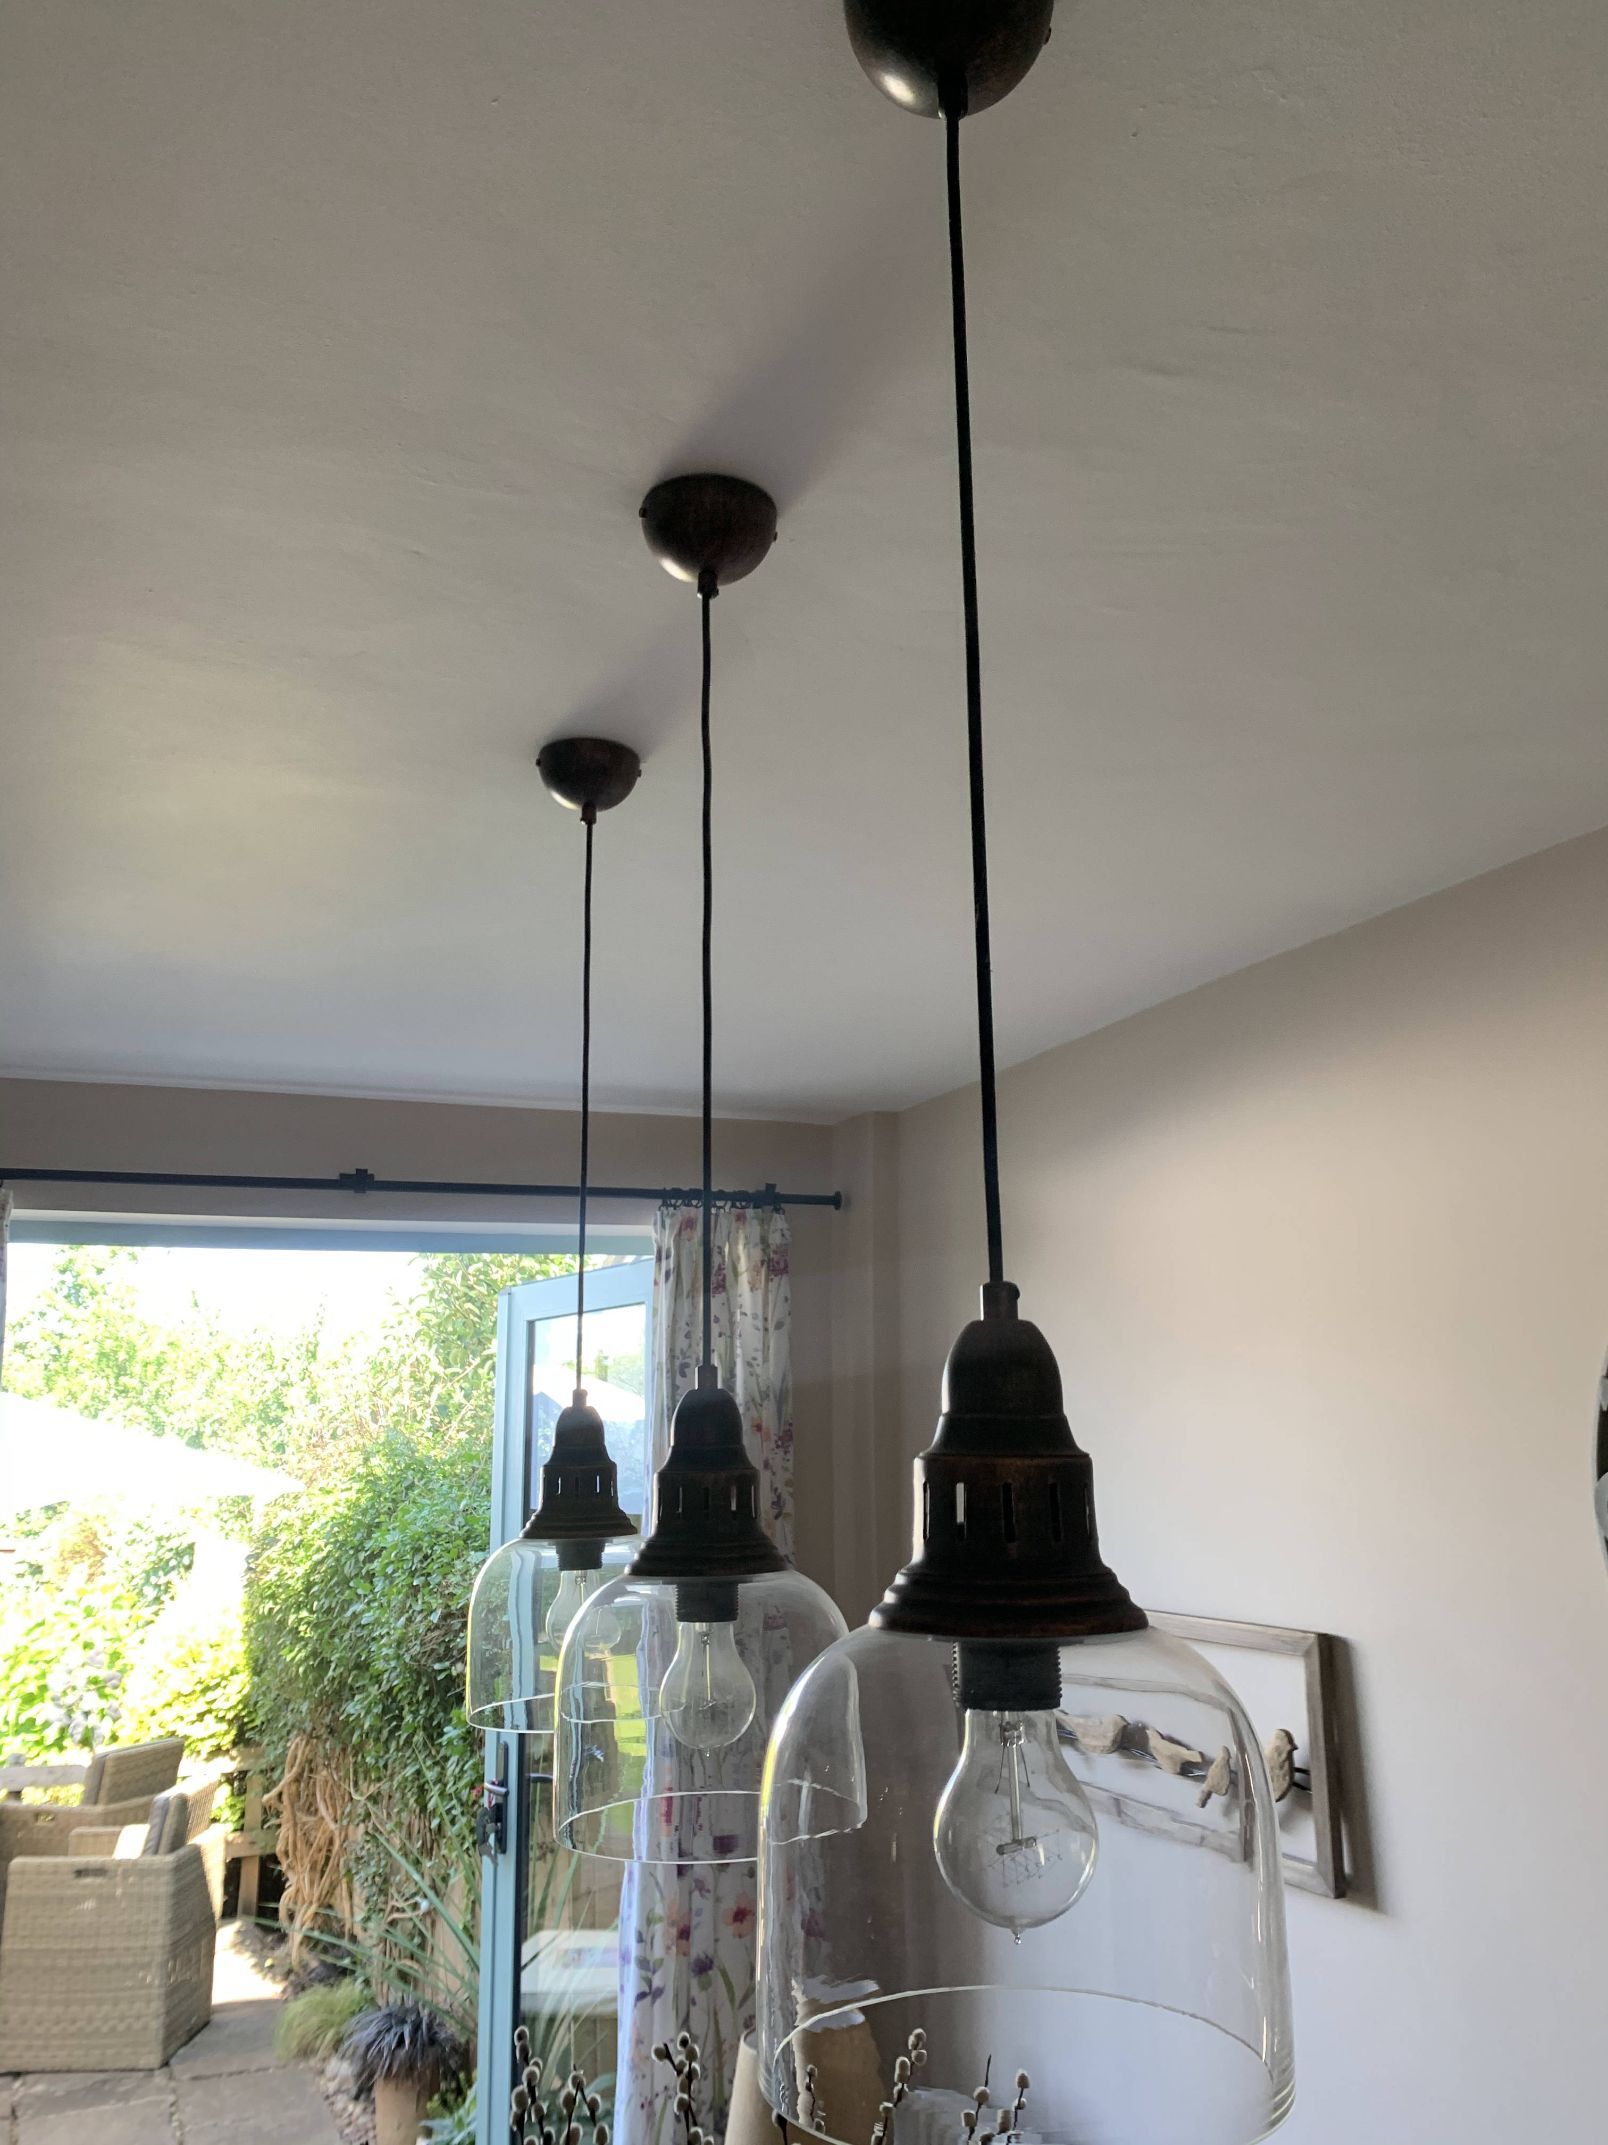 Decorative Domestic Light Installation